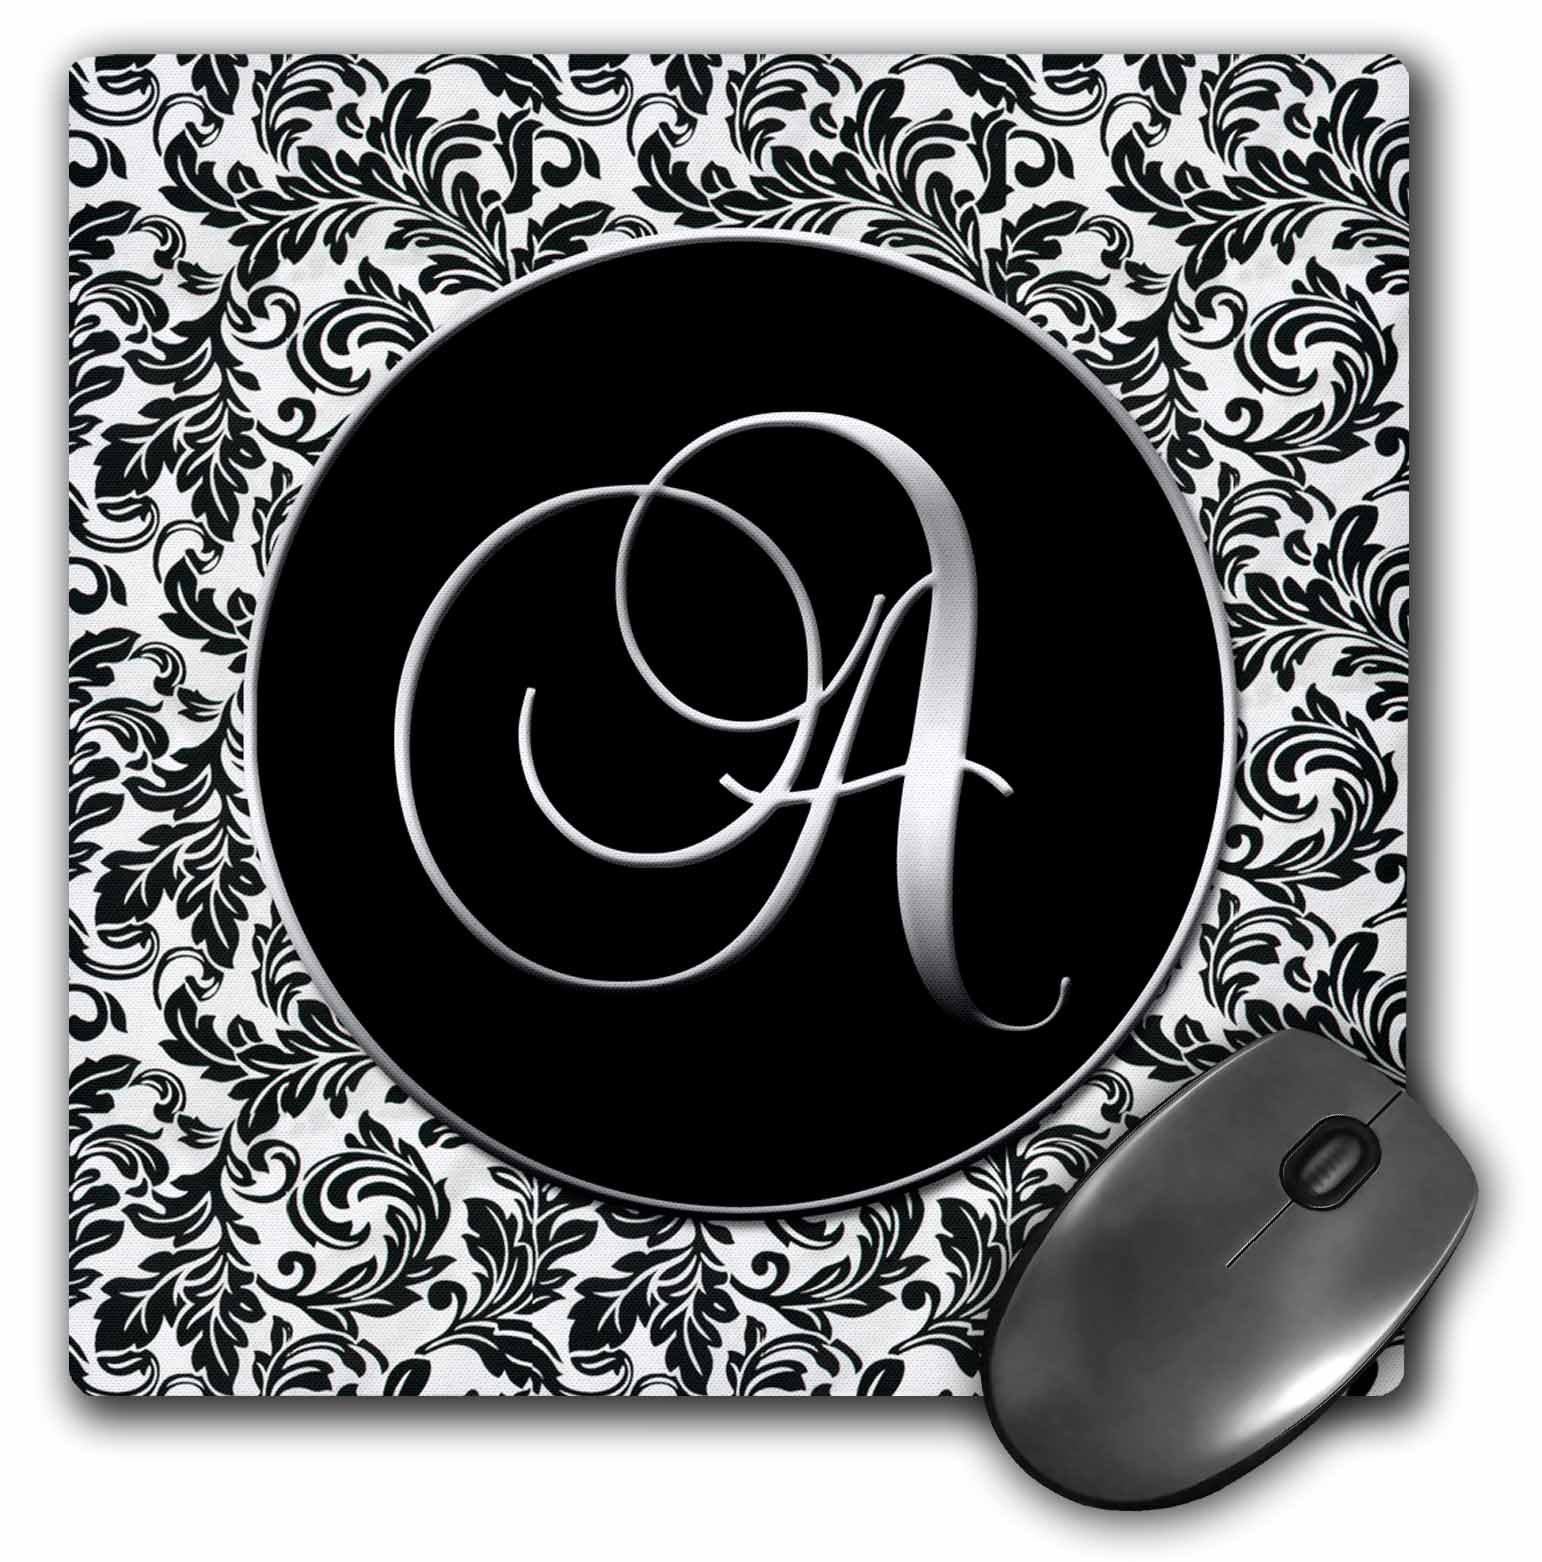 3dRose Letter A - Black and White Damask, Mouse Pad, 8 by 8 inches